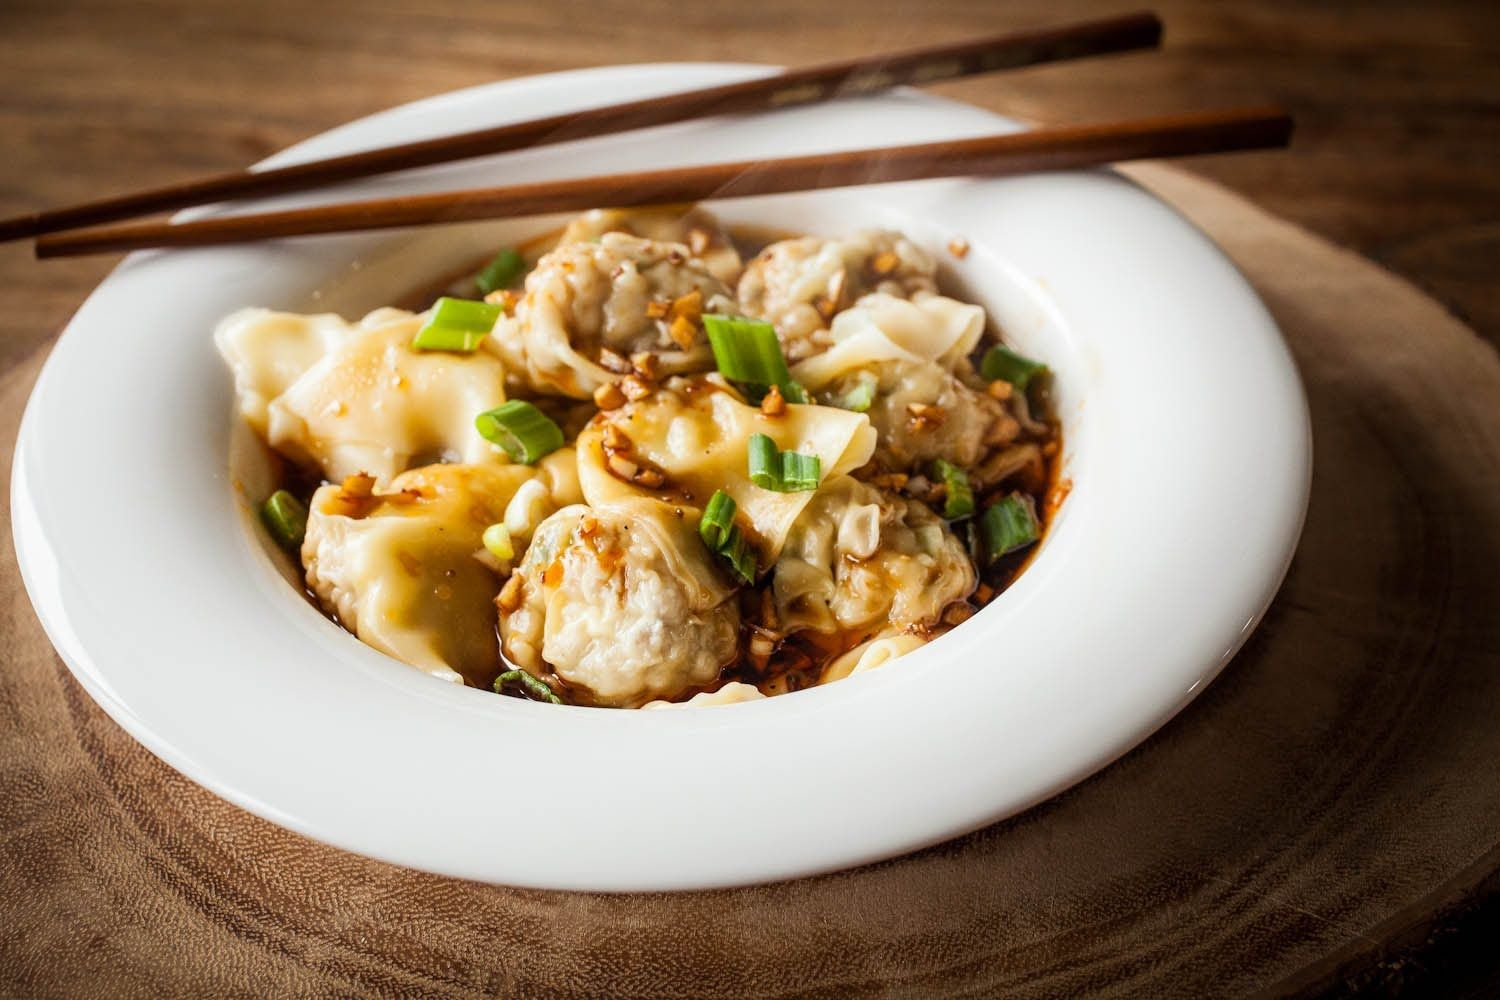 How to make sichuan wontons asian recipies pinterest cooking easy to make pork and scallion filled wontons in a spicy sichuan sauce with a video tutorial forumfinder Choice Image